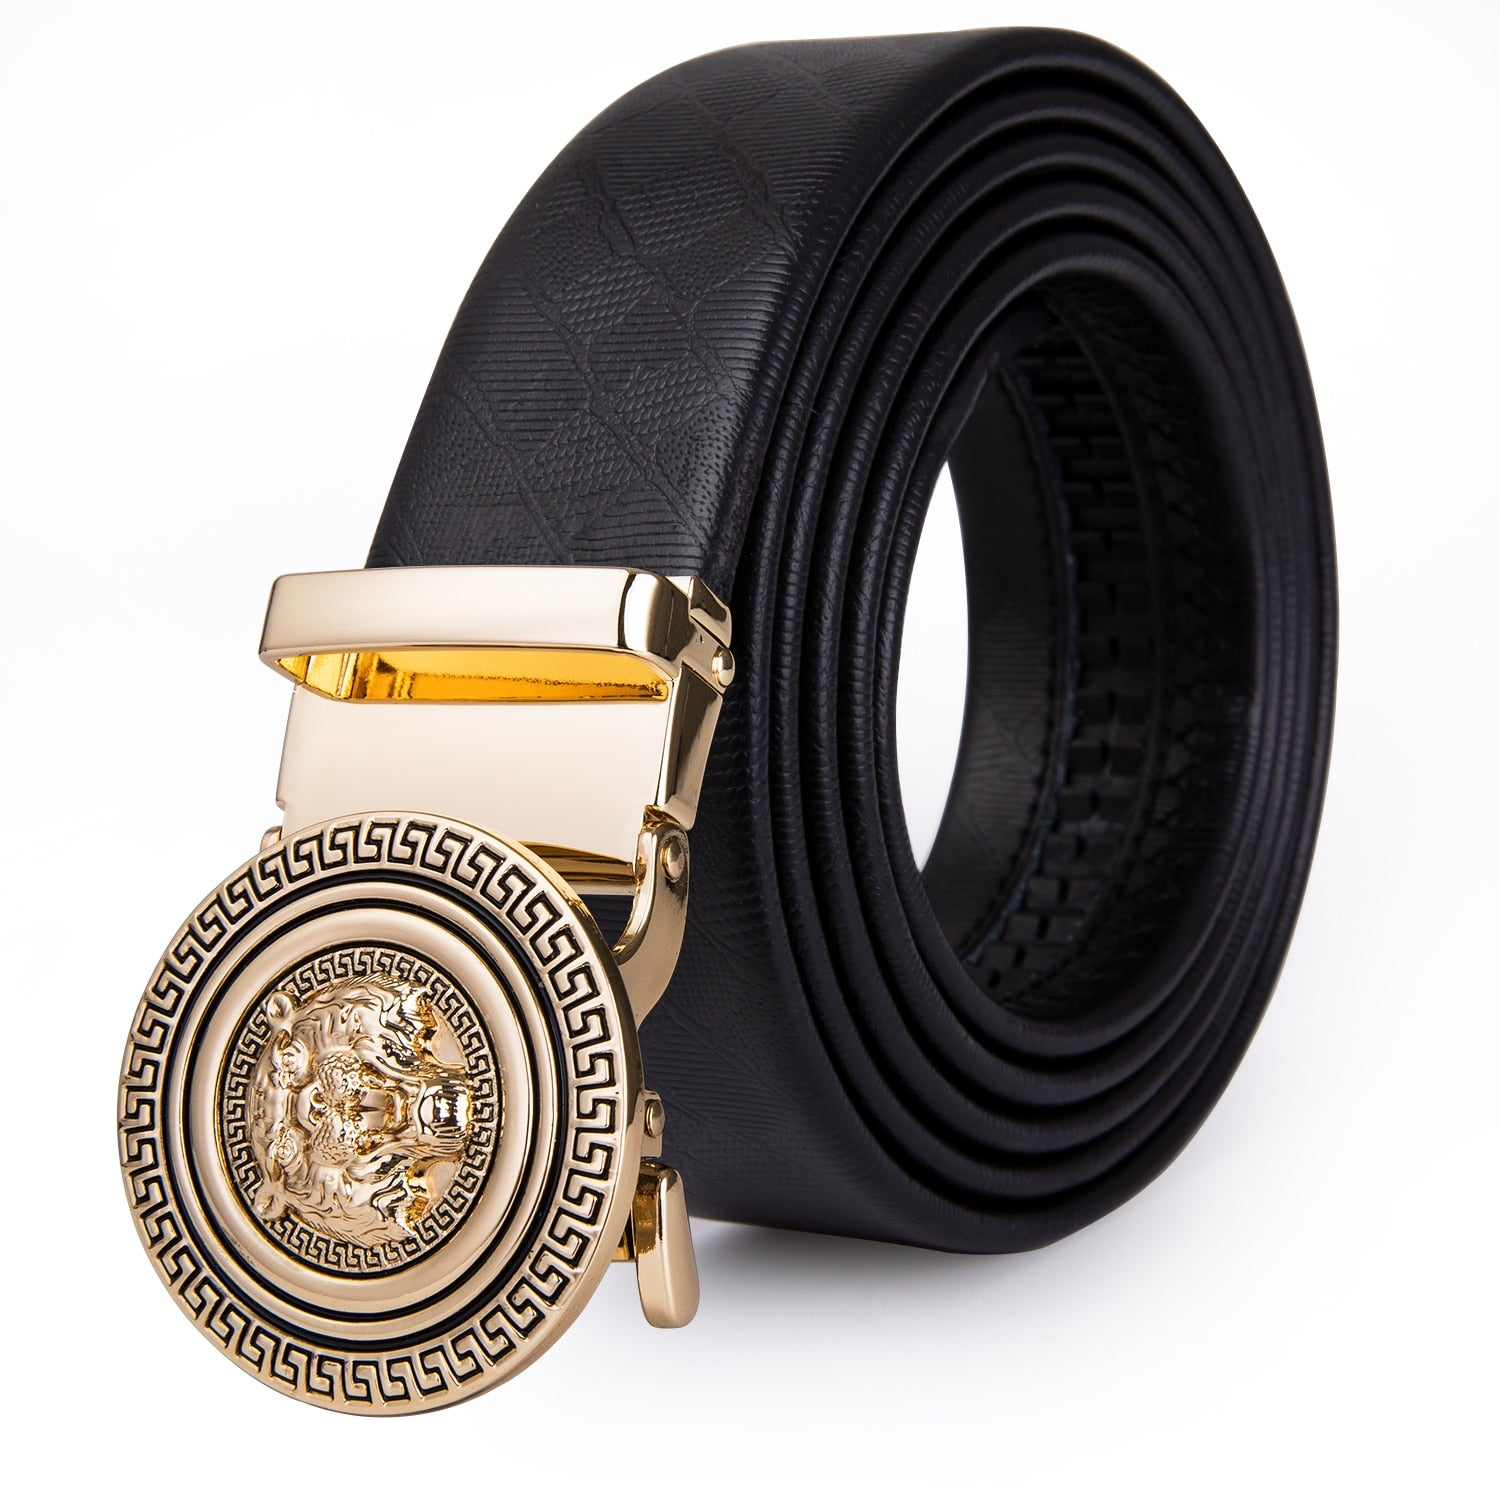 Boxed Men's Genuine High Quality Cowhide Leather Belt, Automatic with Gold Buckle,  (Free Shipping)